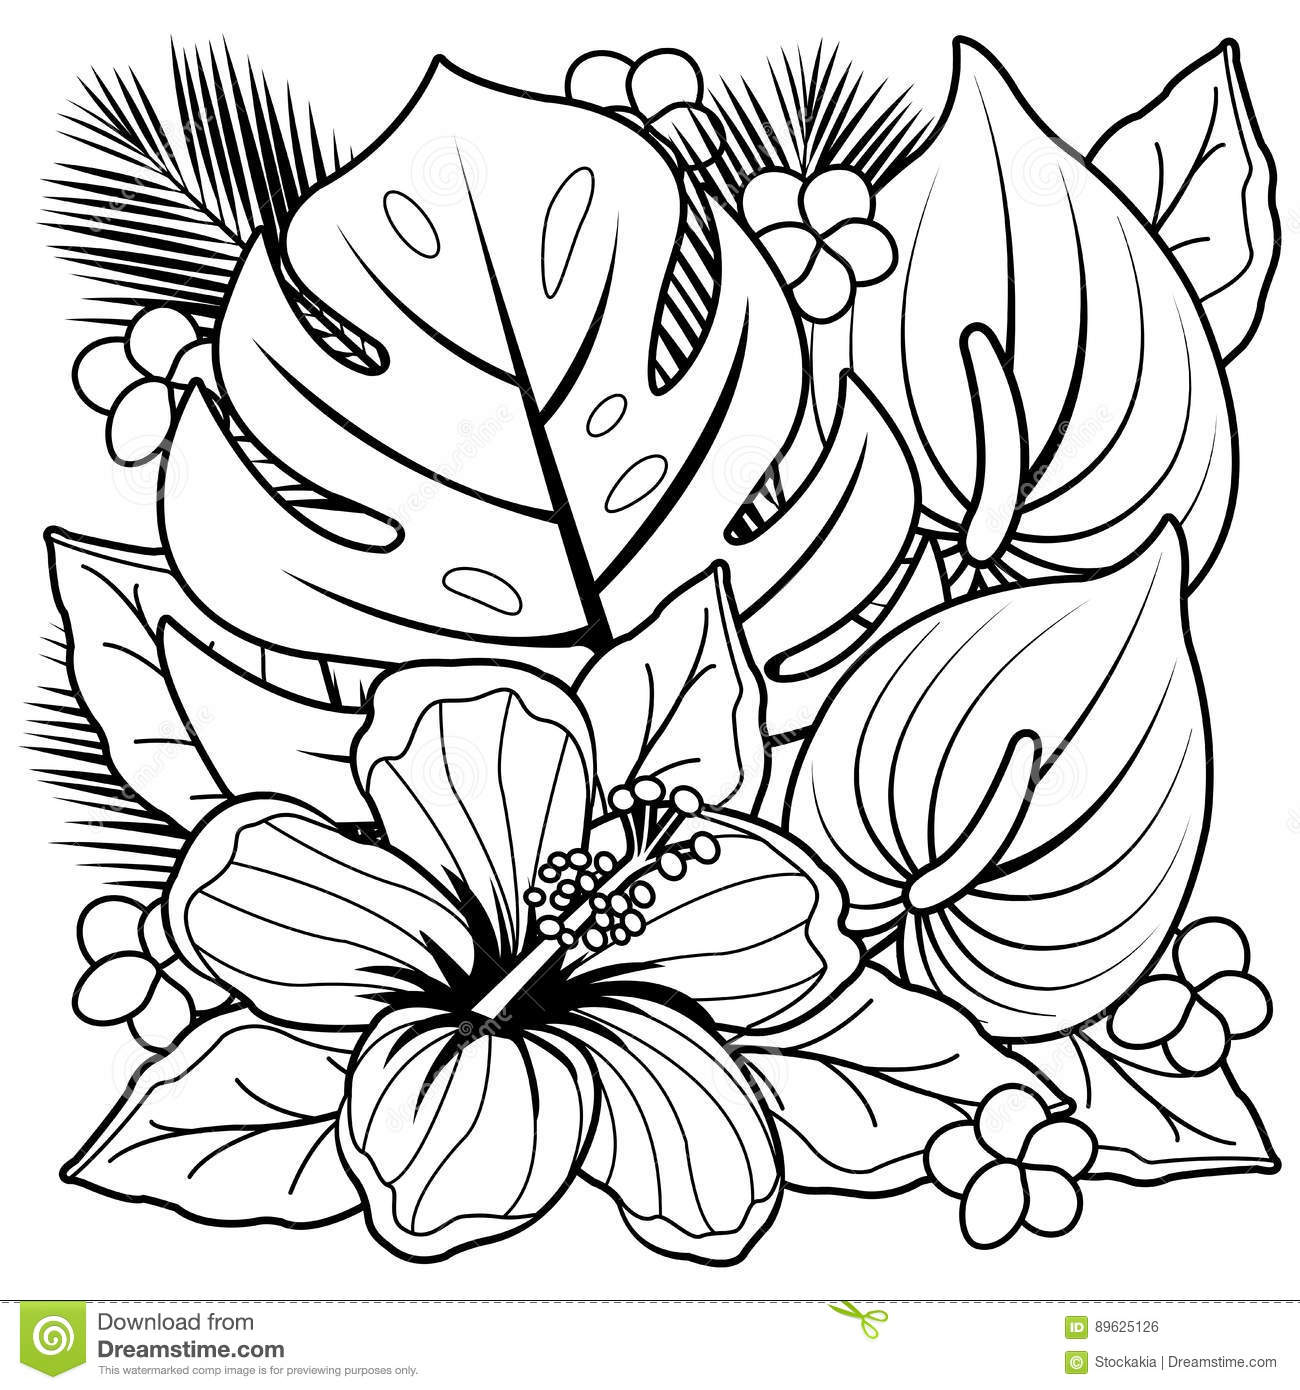 Coloriage Fruits Tropicaux.Coloriage Feuille Exotique